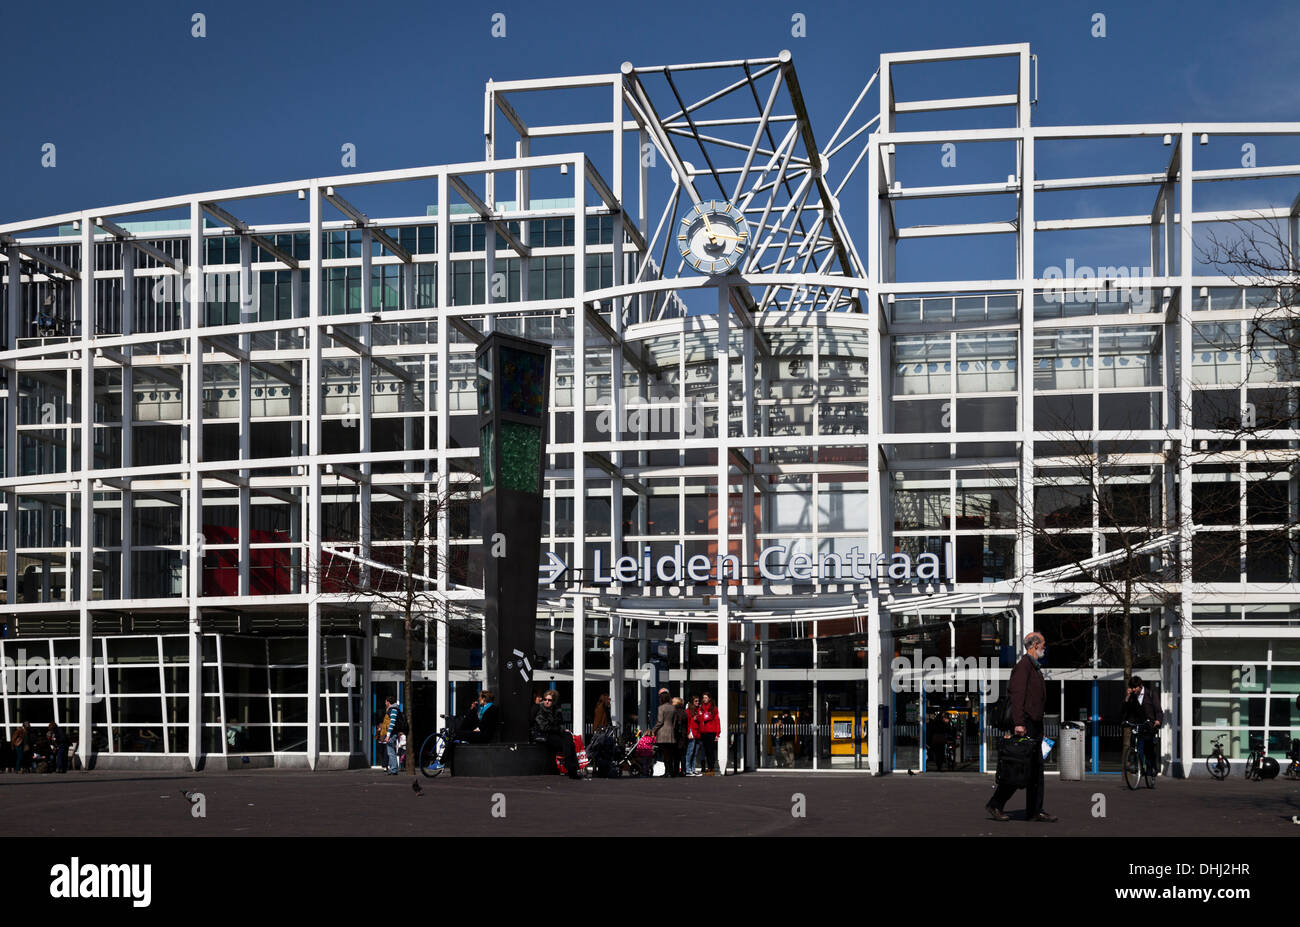 Leiden Centraal station frontage - Stock Image